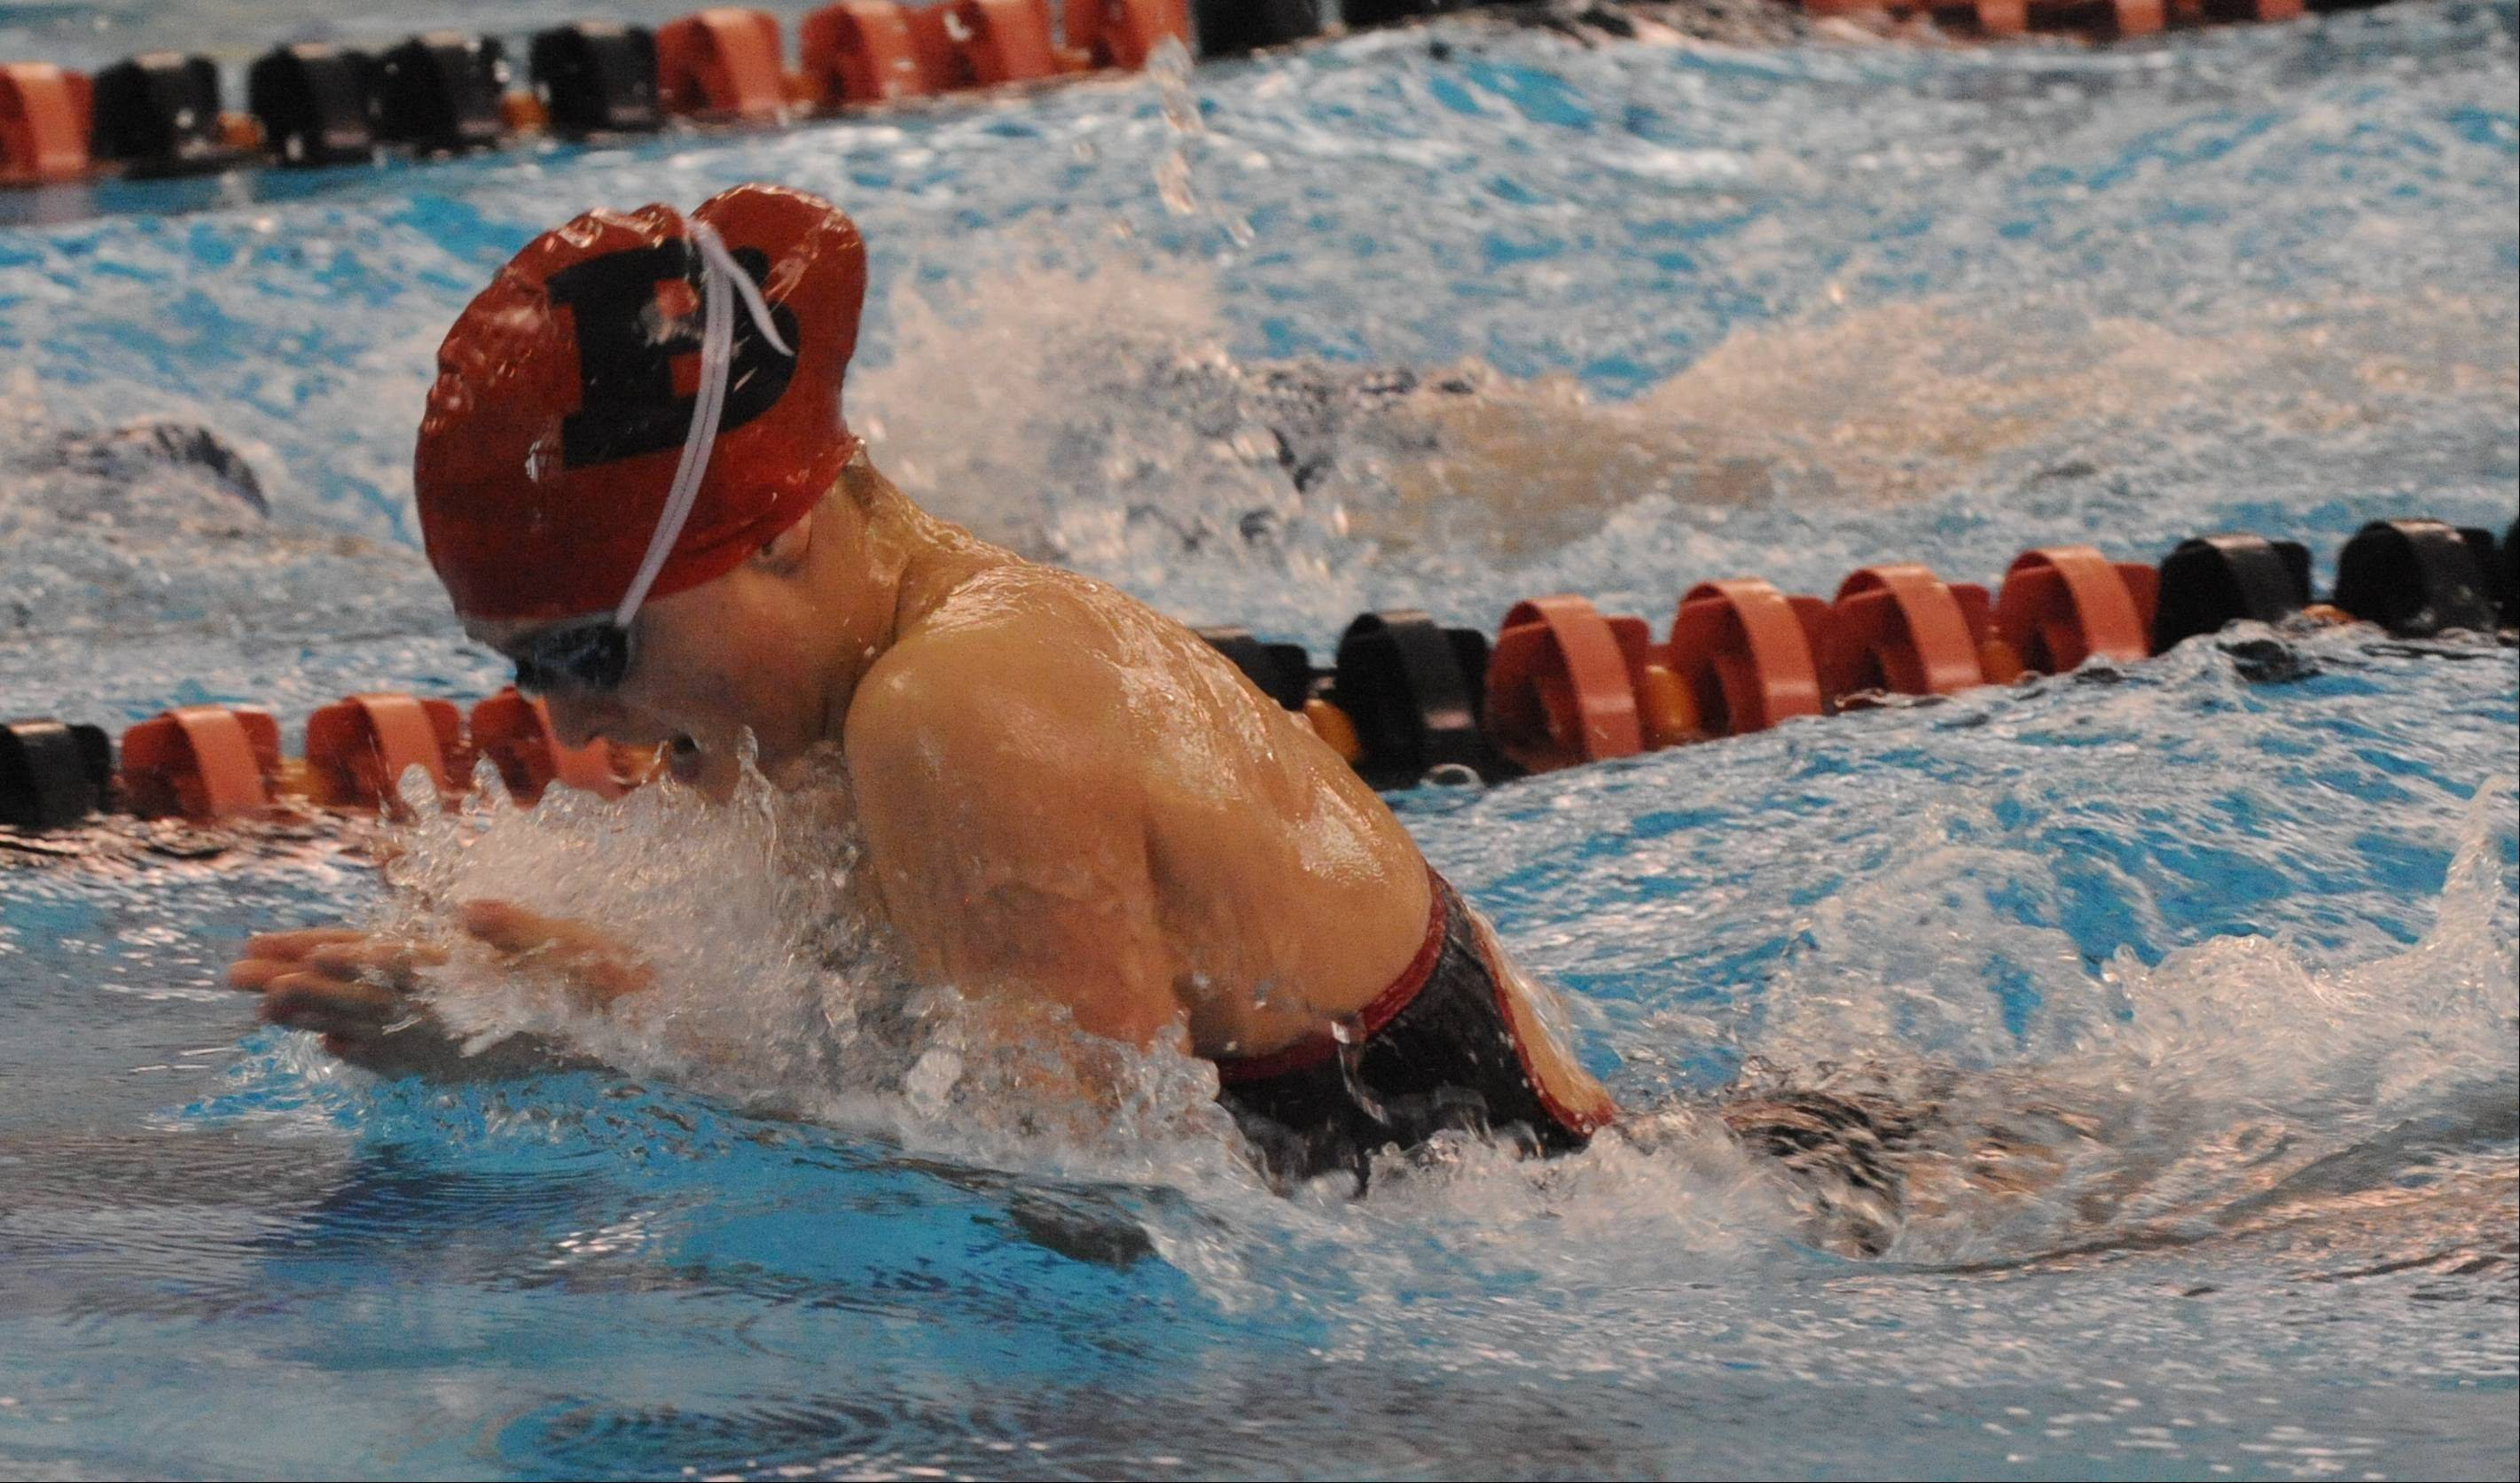 Junior Mekenna Scheitlin scored points in the 50-yard freestyle